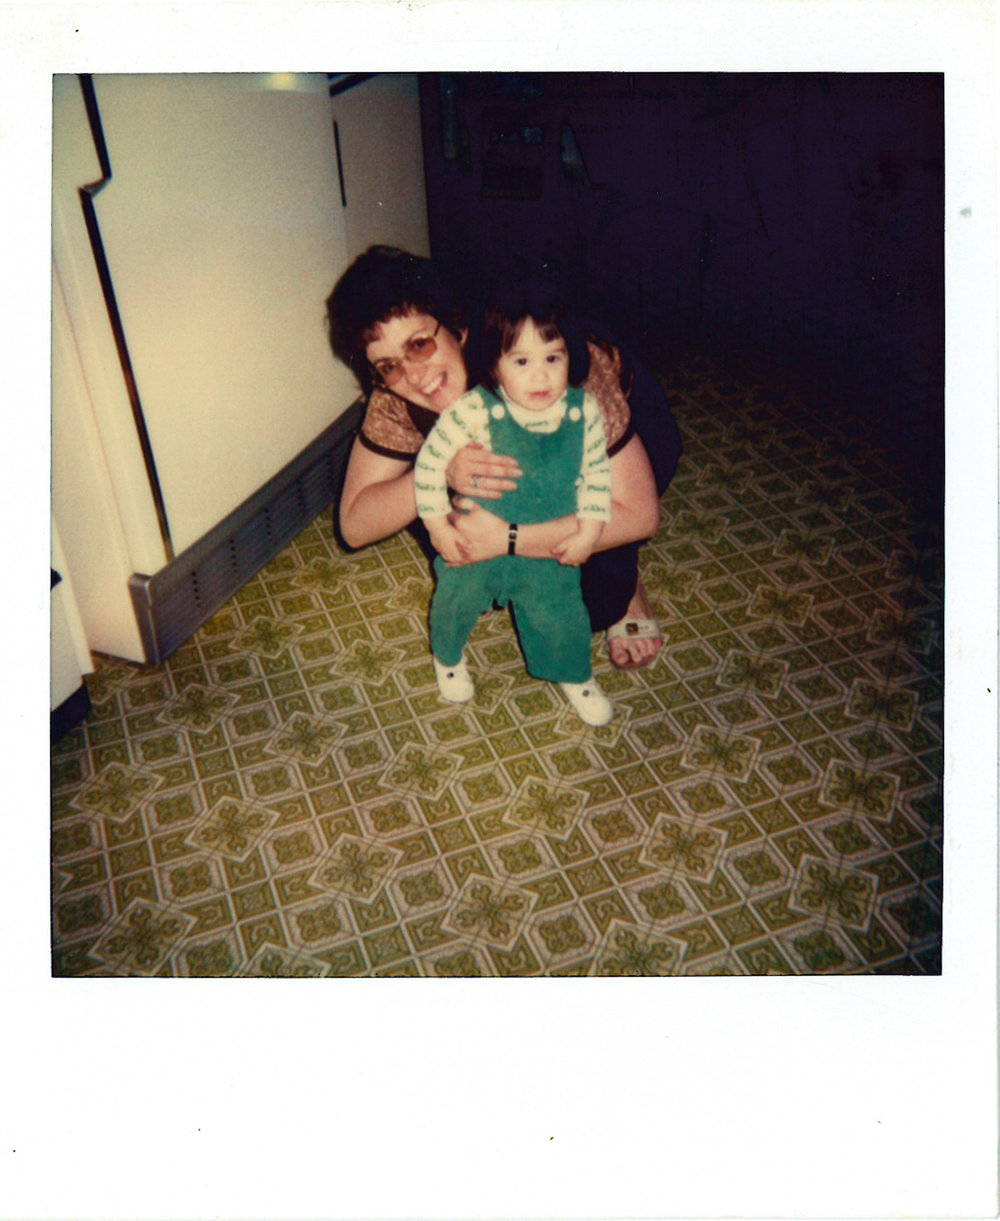 Me and my mom. I miss her so much and I'm so happy I have these pictures to look at. And who doesn't love that green linoleum! ha!